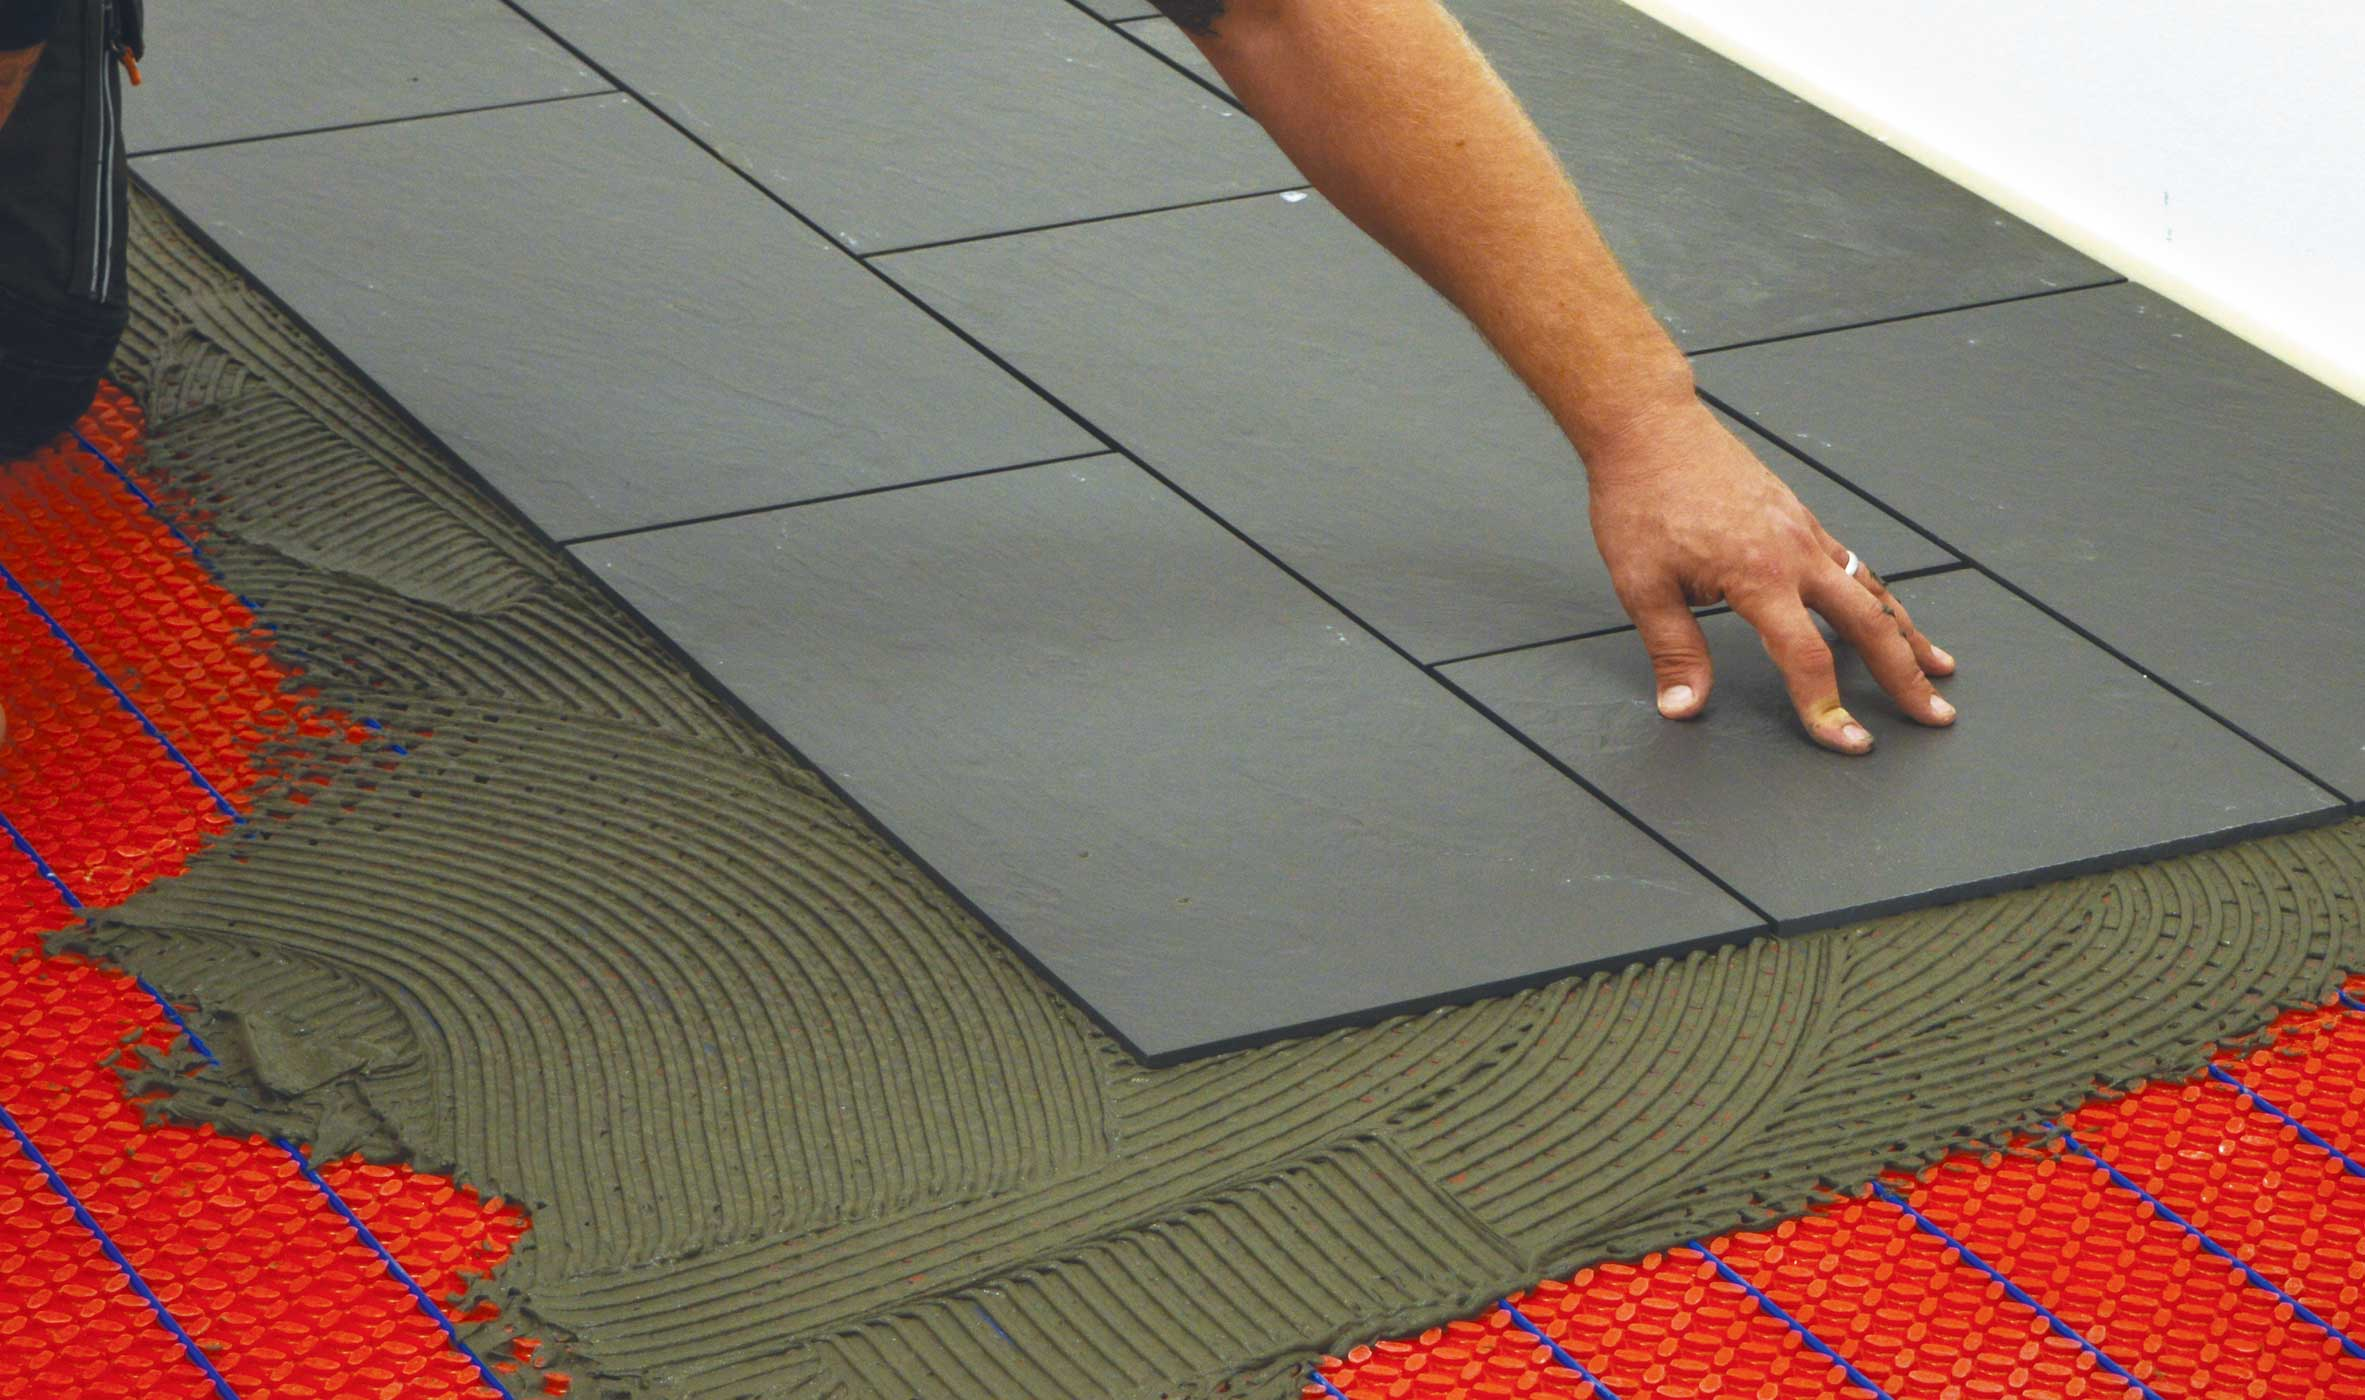 Warmup heating mats installation